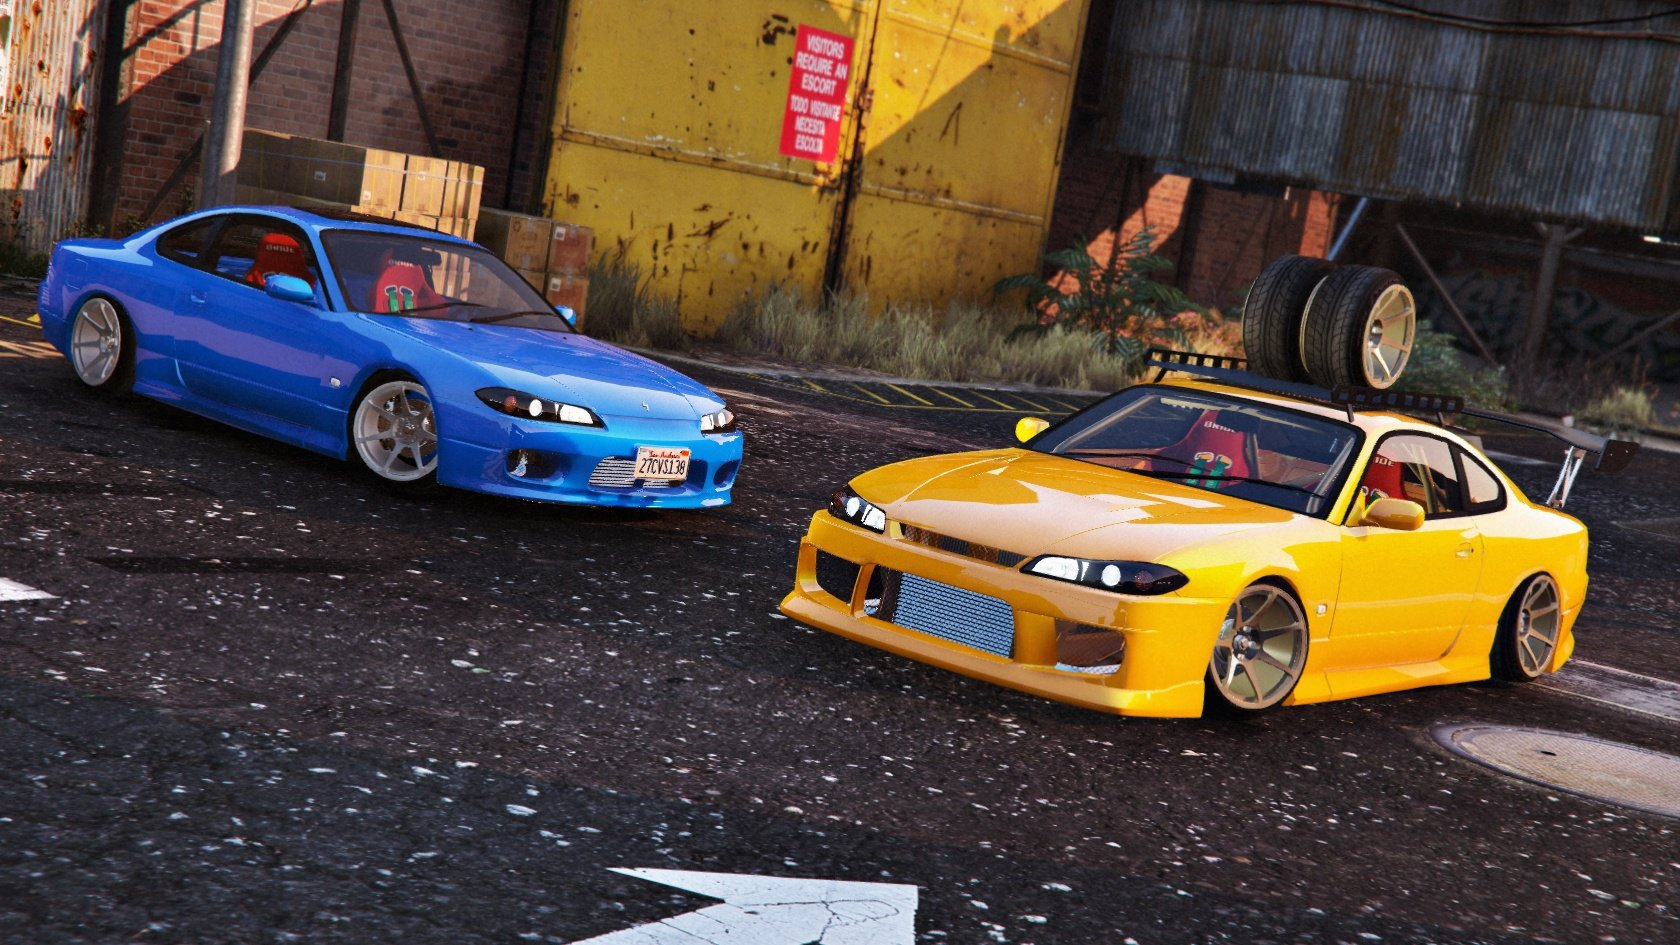 nissan silvia s15 tunable vehicules pour gta v sur gta modding. Black Bedroom Furniture Sets. Home Design Ideas